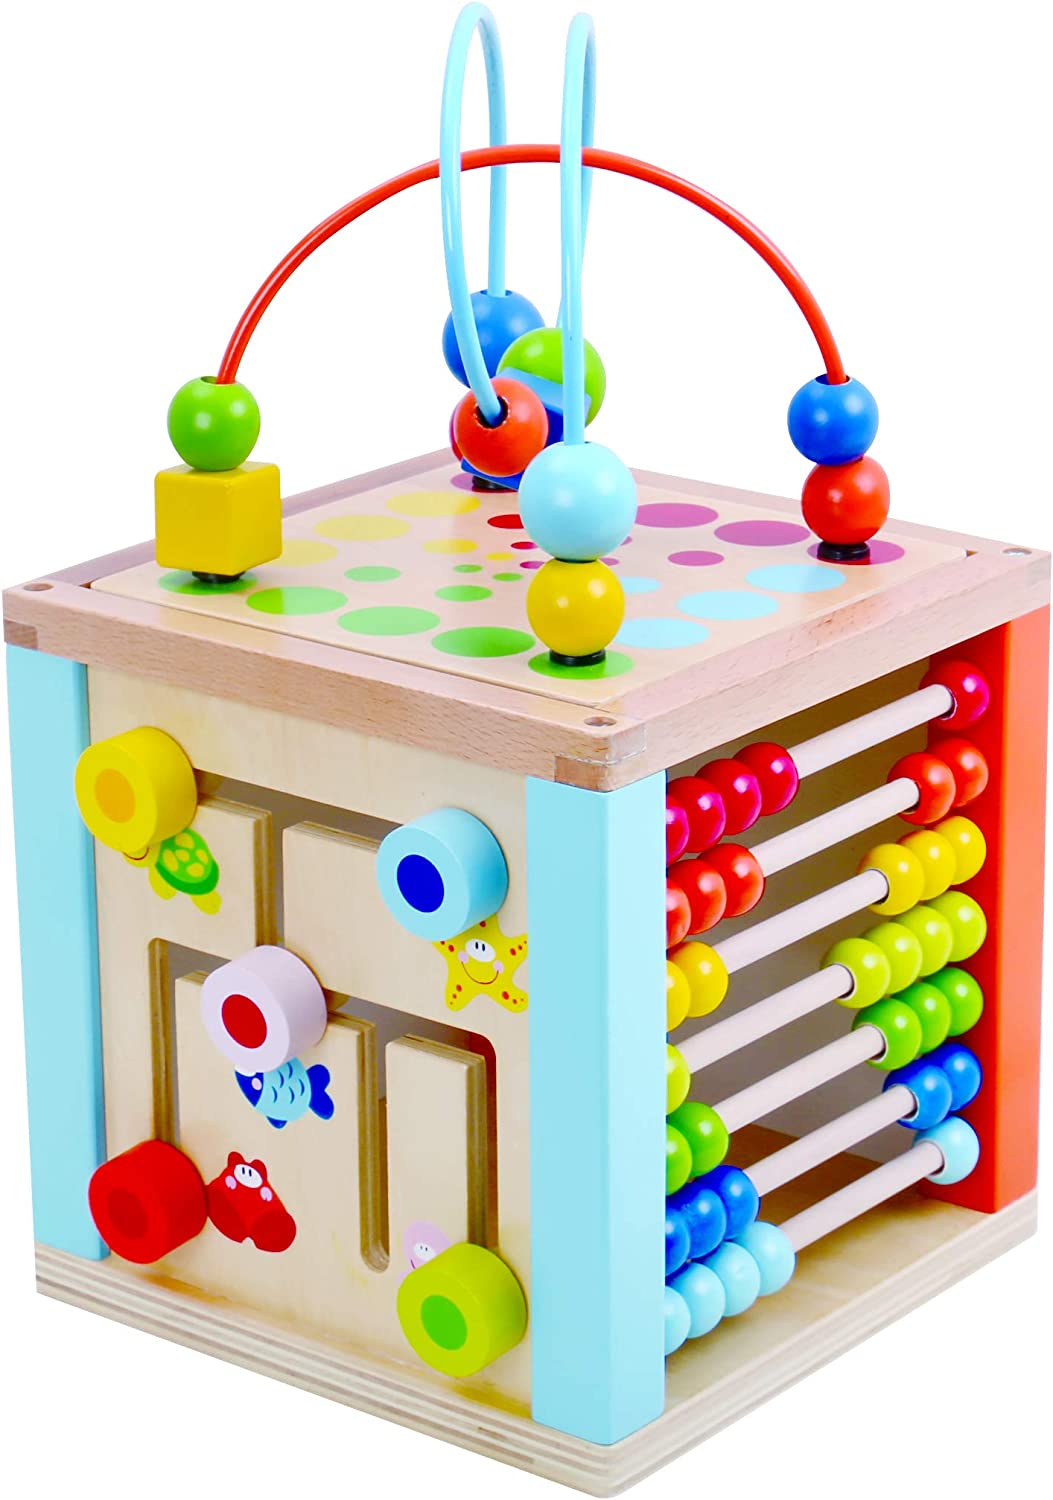 Tooky Toys 5 in 1 Multi Functional Activity Play Cube